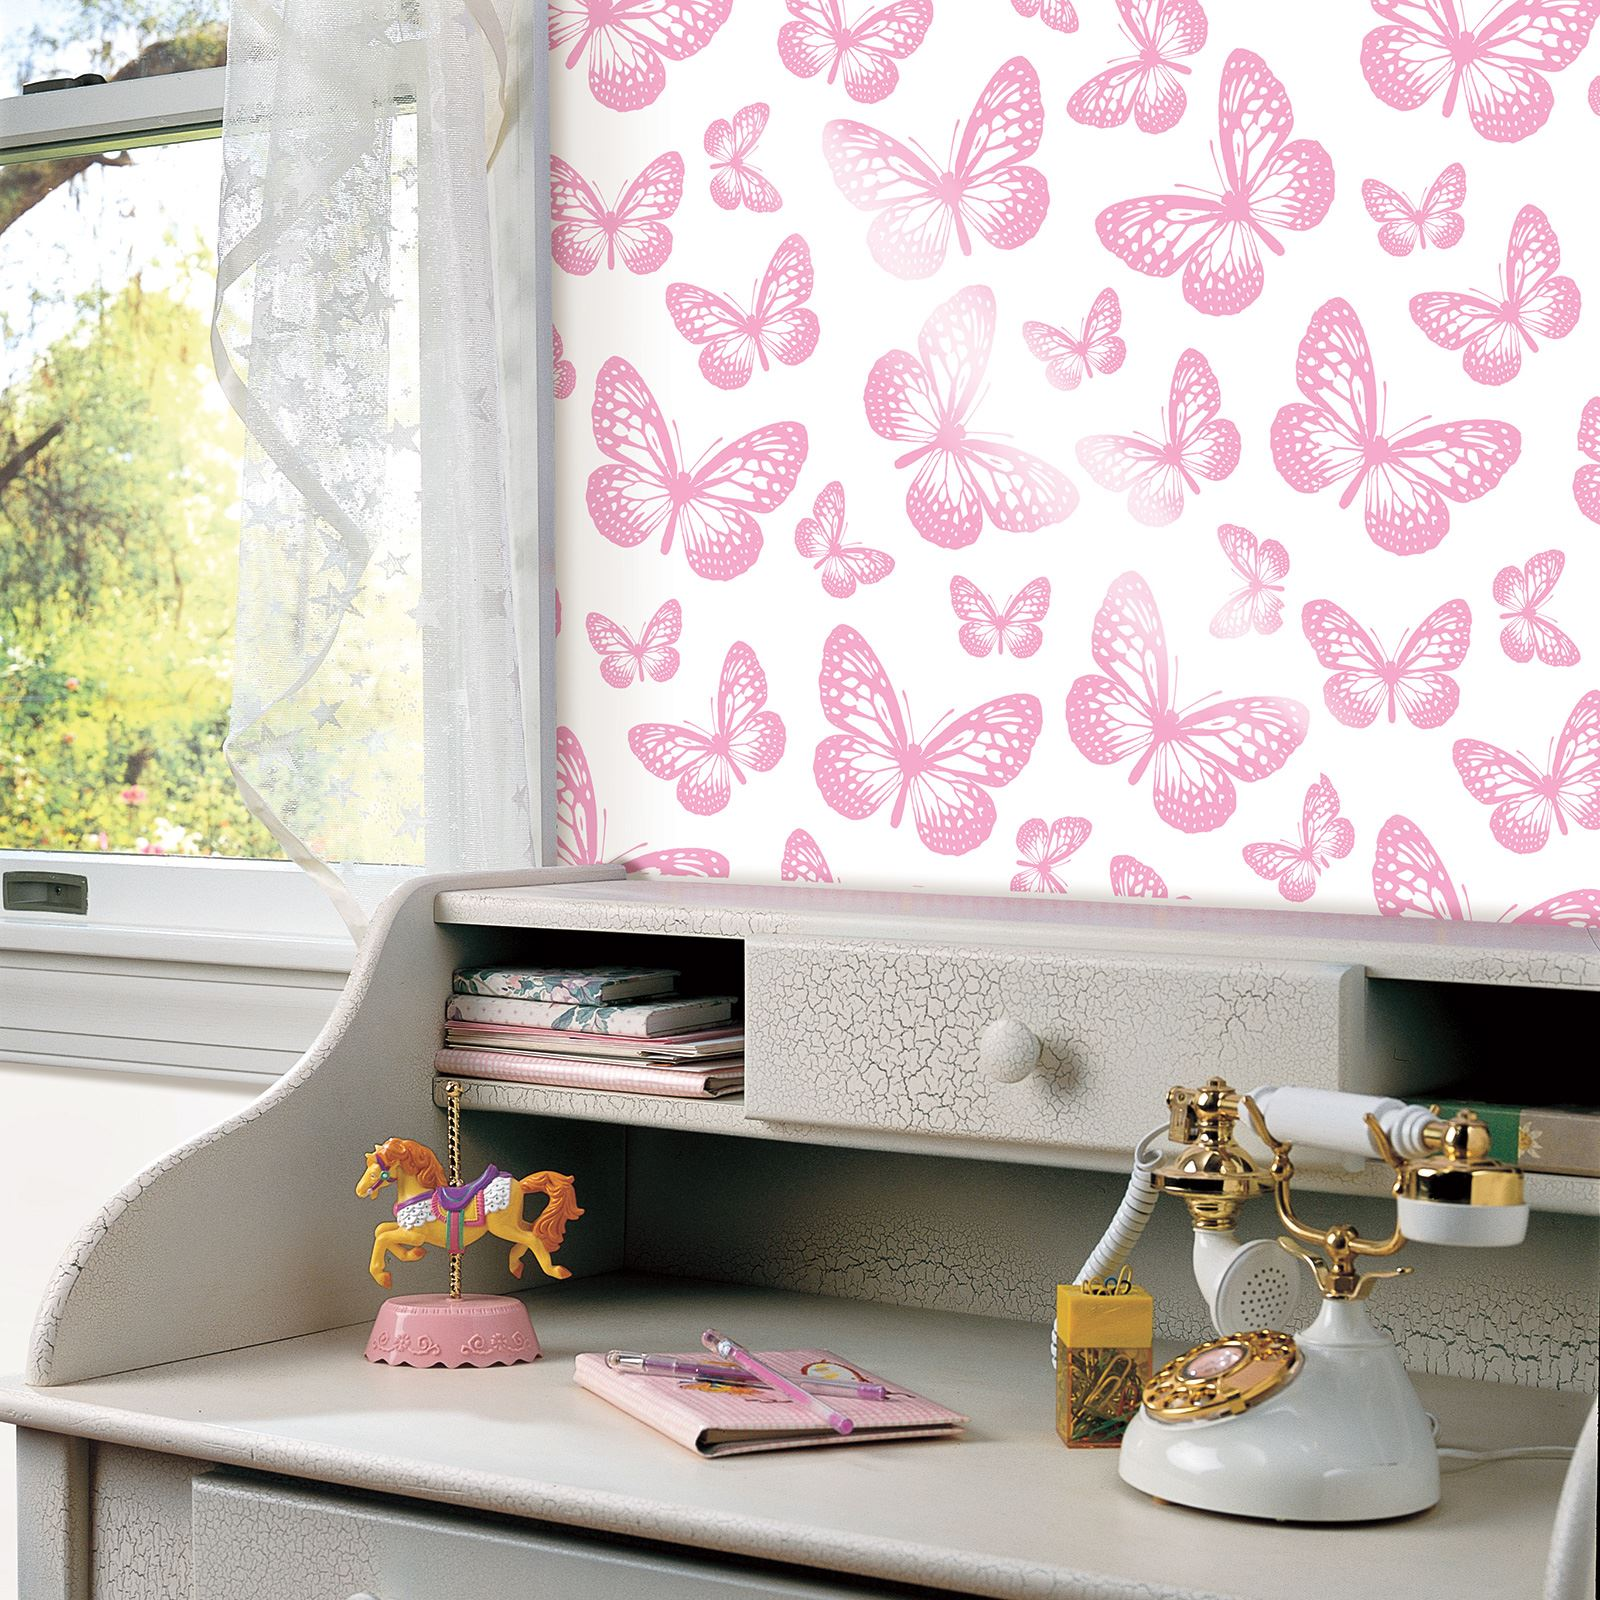 BUTTERFLY WALLPAPER GIRLS BEDROOM DECOR PINK WHITE TEAL PURPLE ...